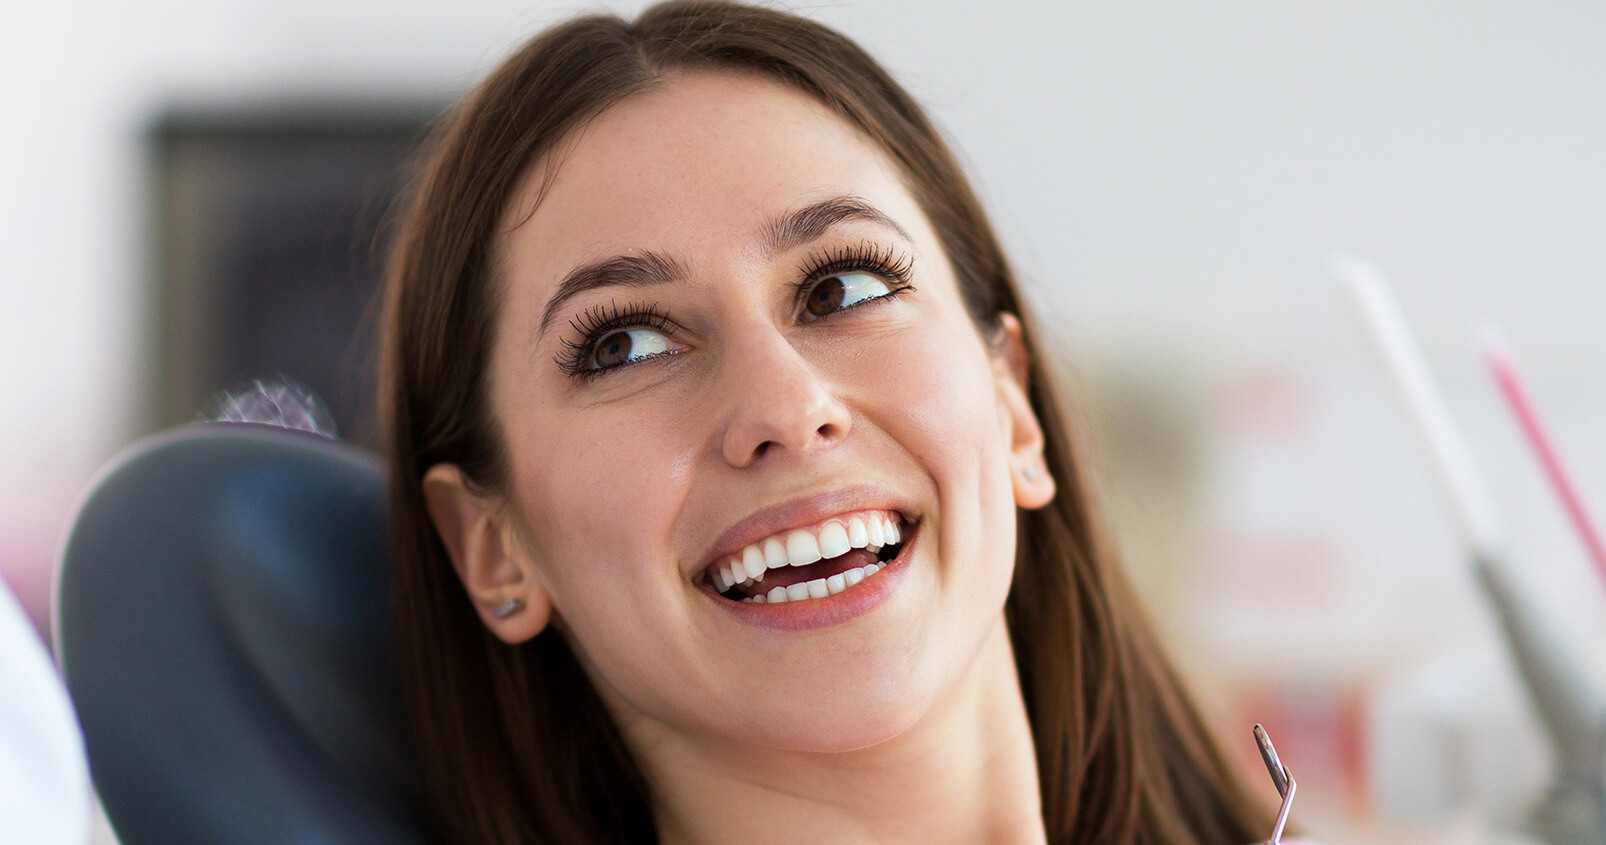 Dental bonding services offered by a Professional Dental practice in Azusa, California